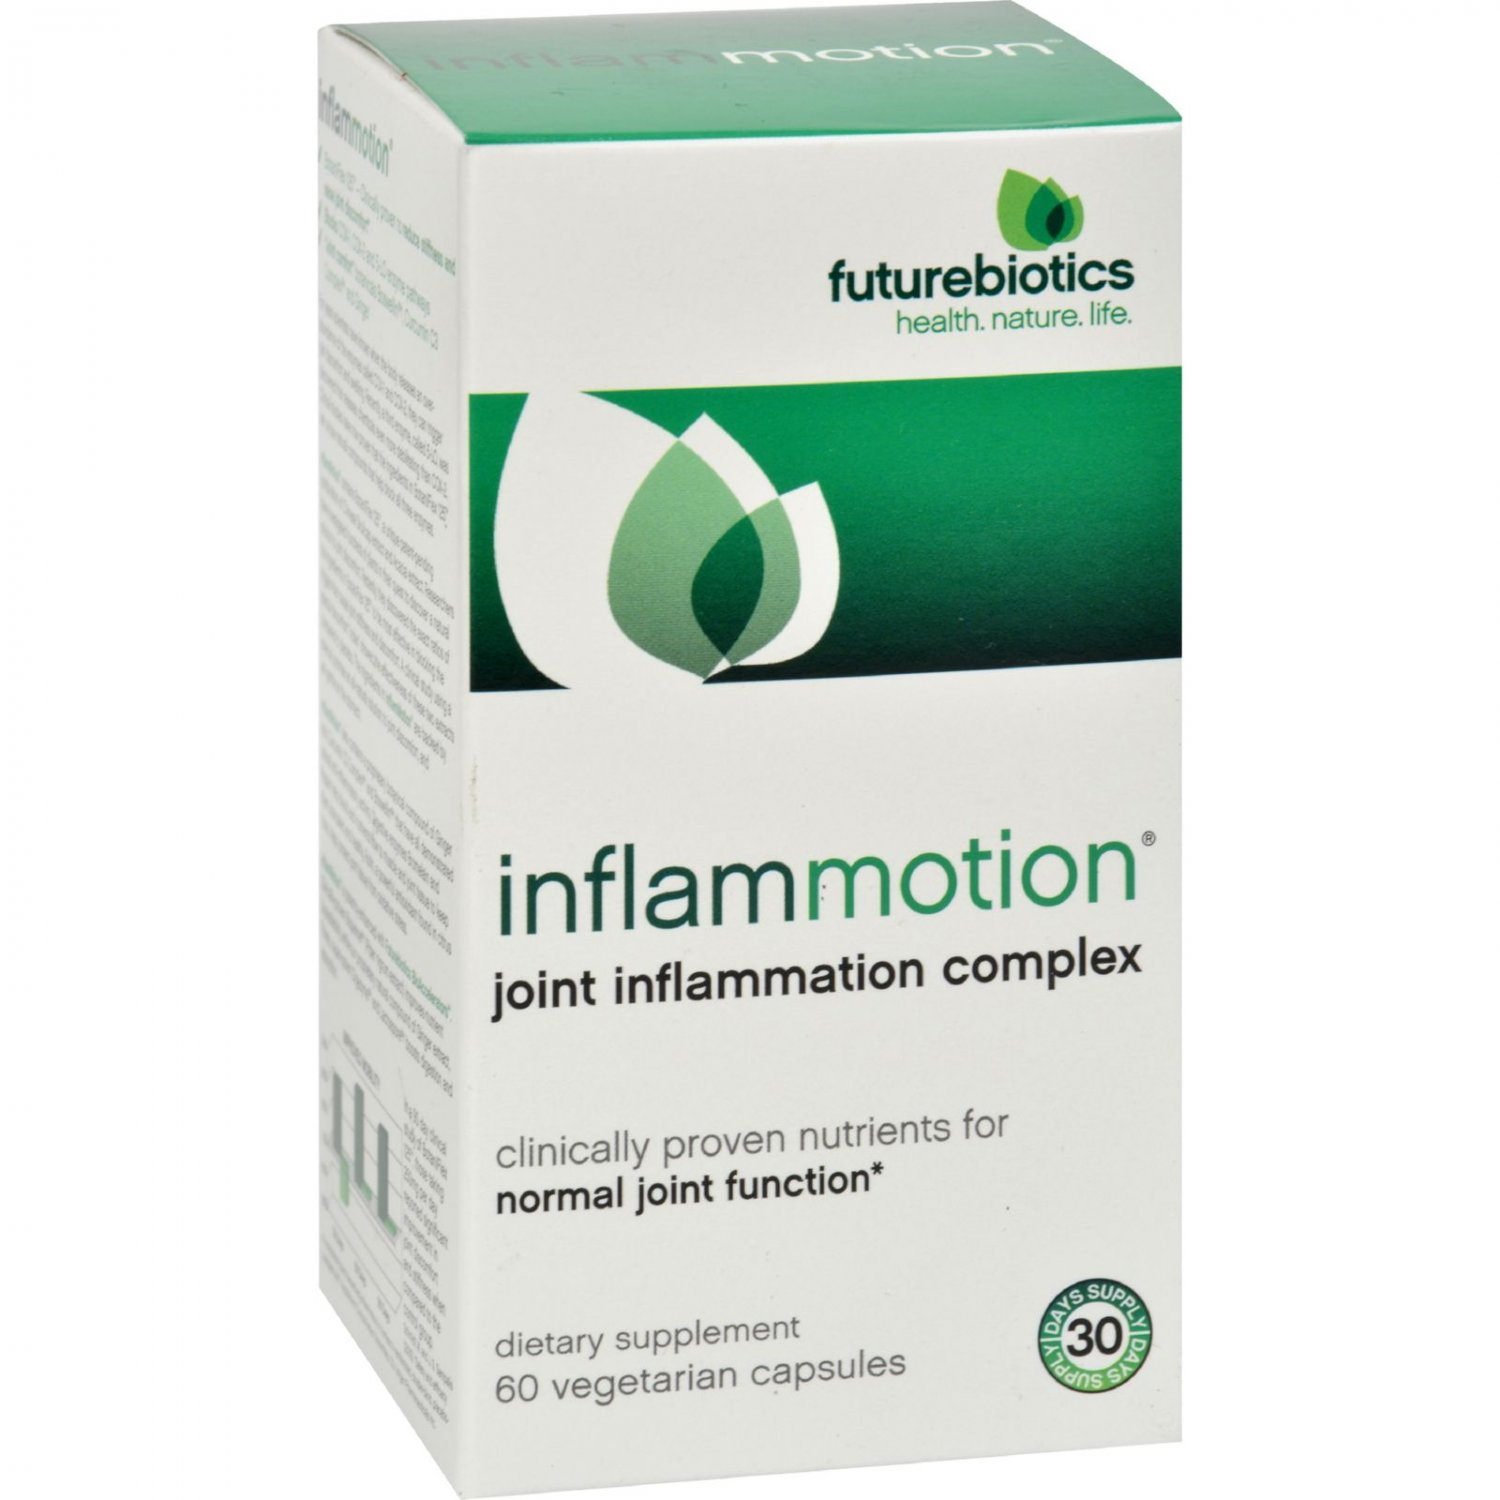 FutureBiotics InflamMotion - 60 Vegetarian Capsules